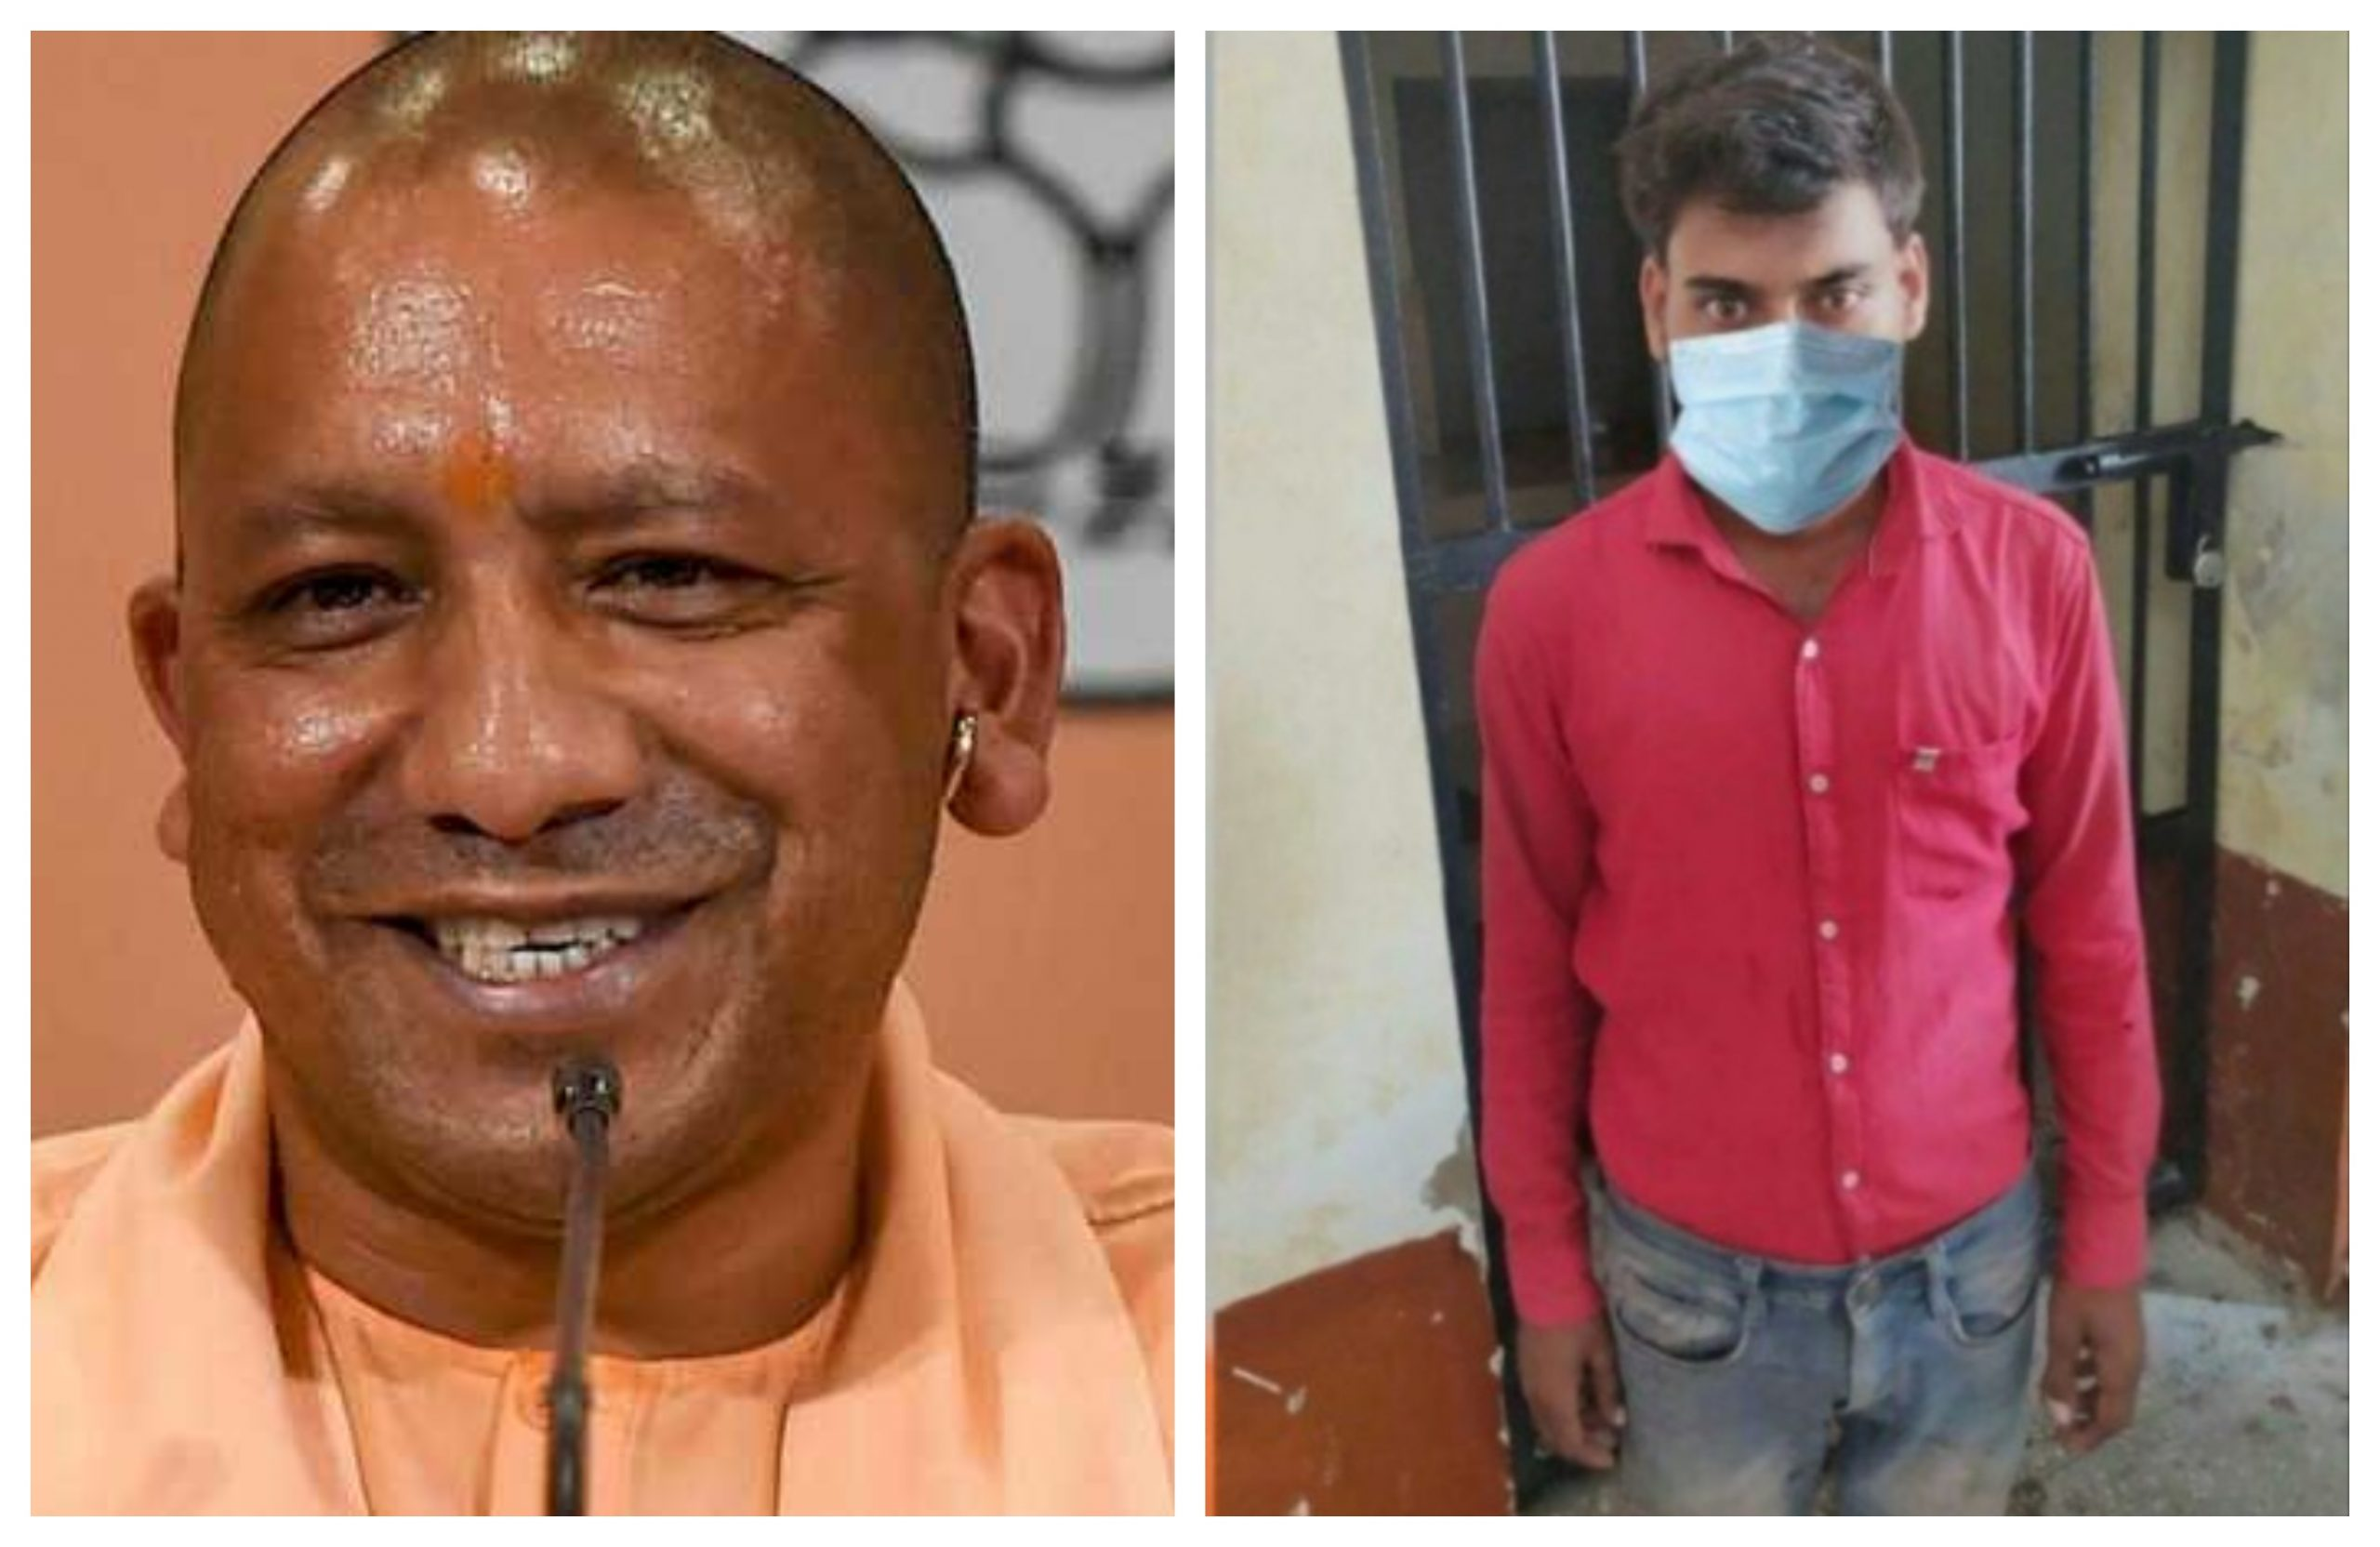 Man who sent death threats to Yogi Adityanath arrested by UP Police, claims he sent the messages while drunk